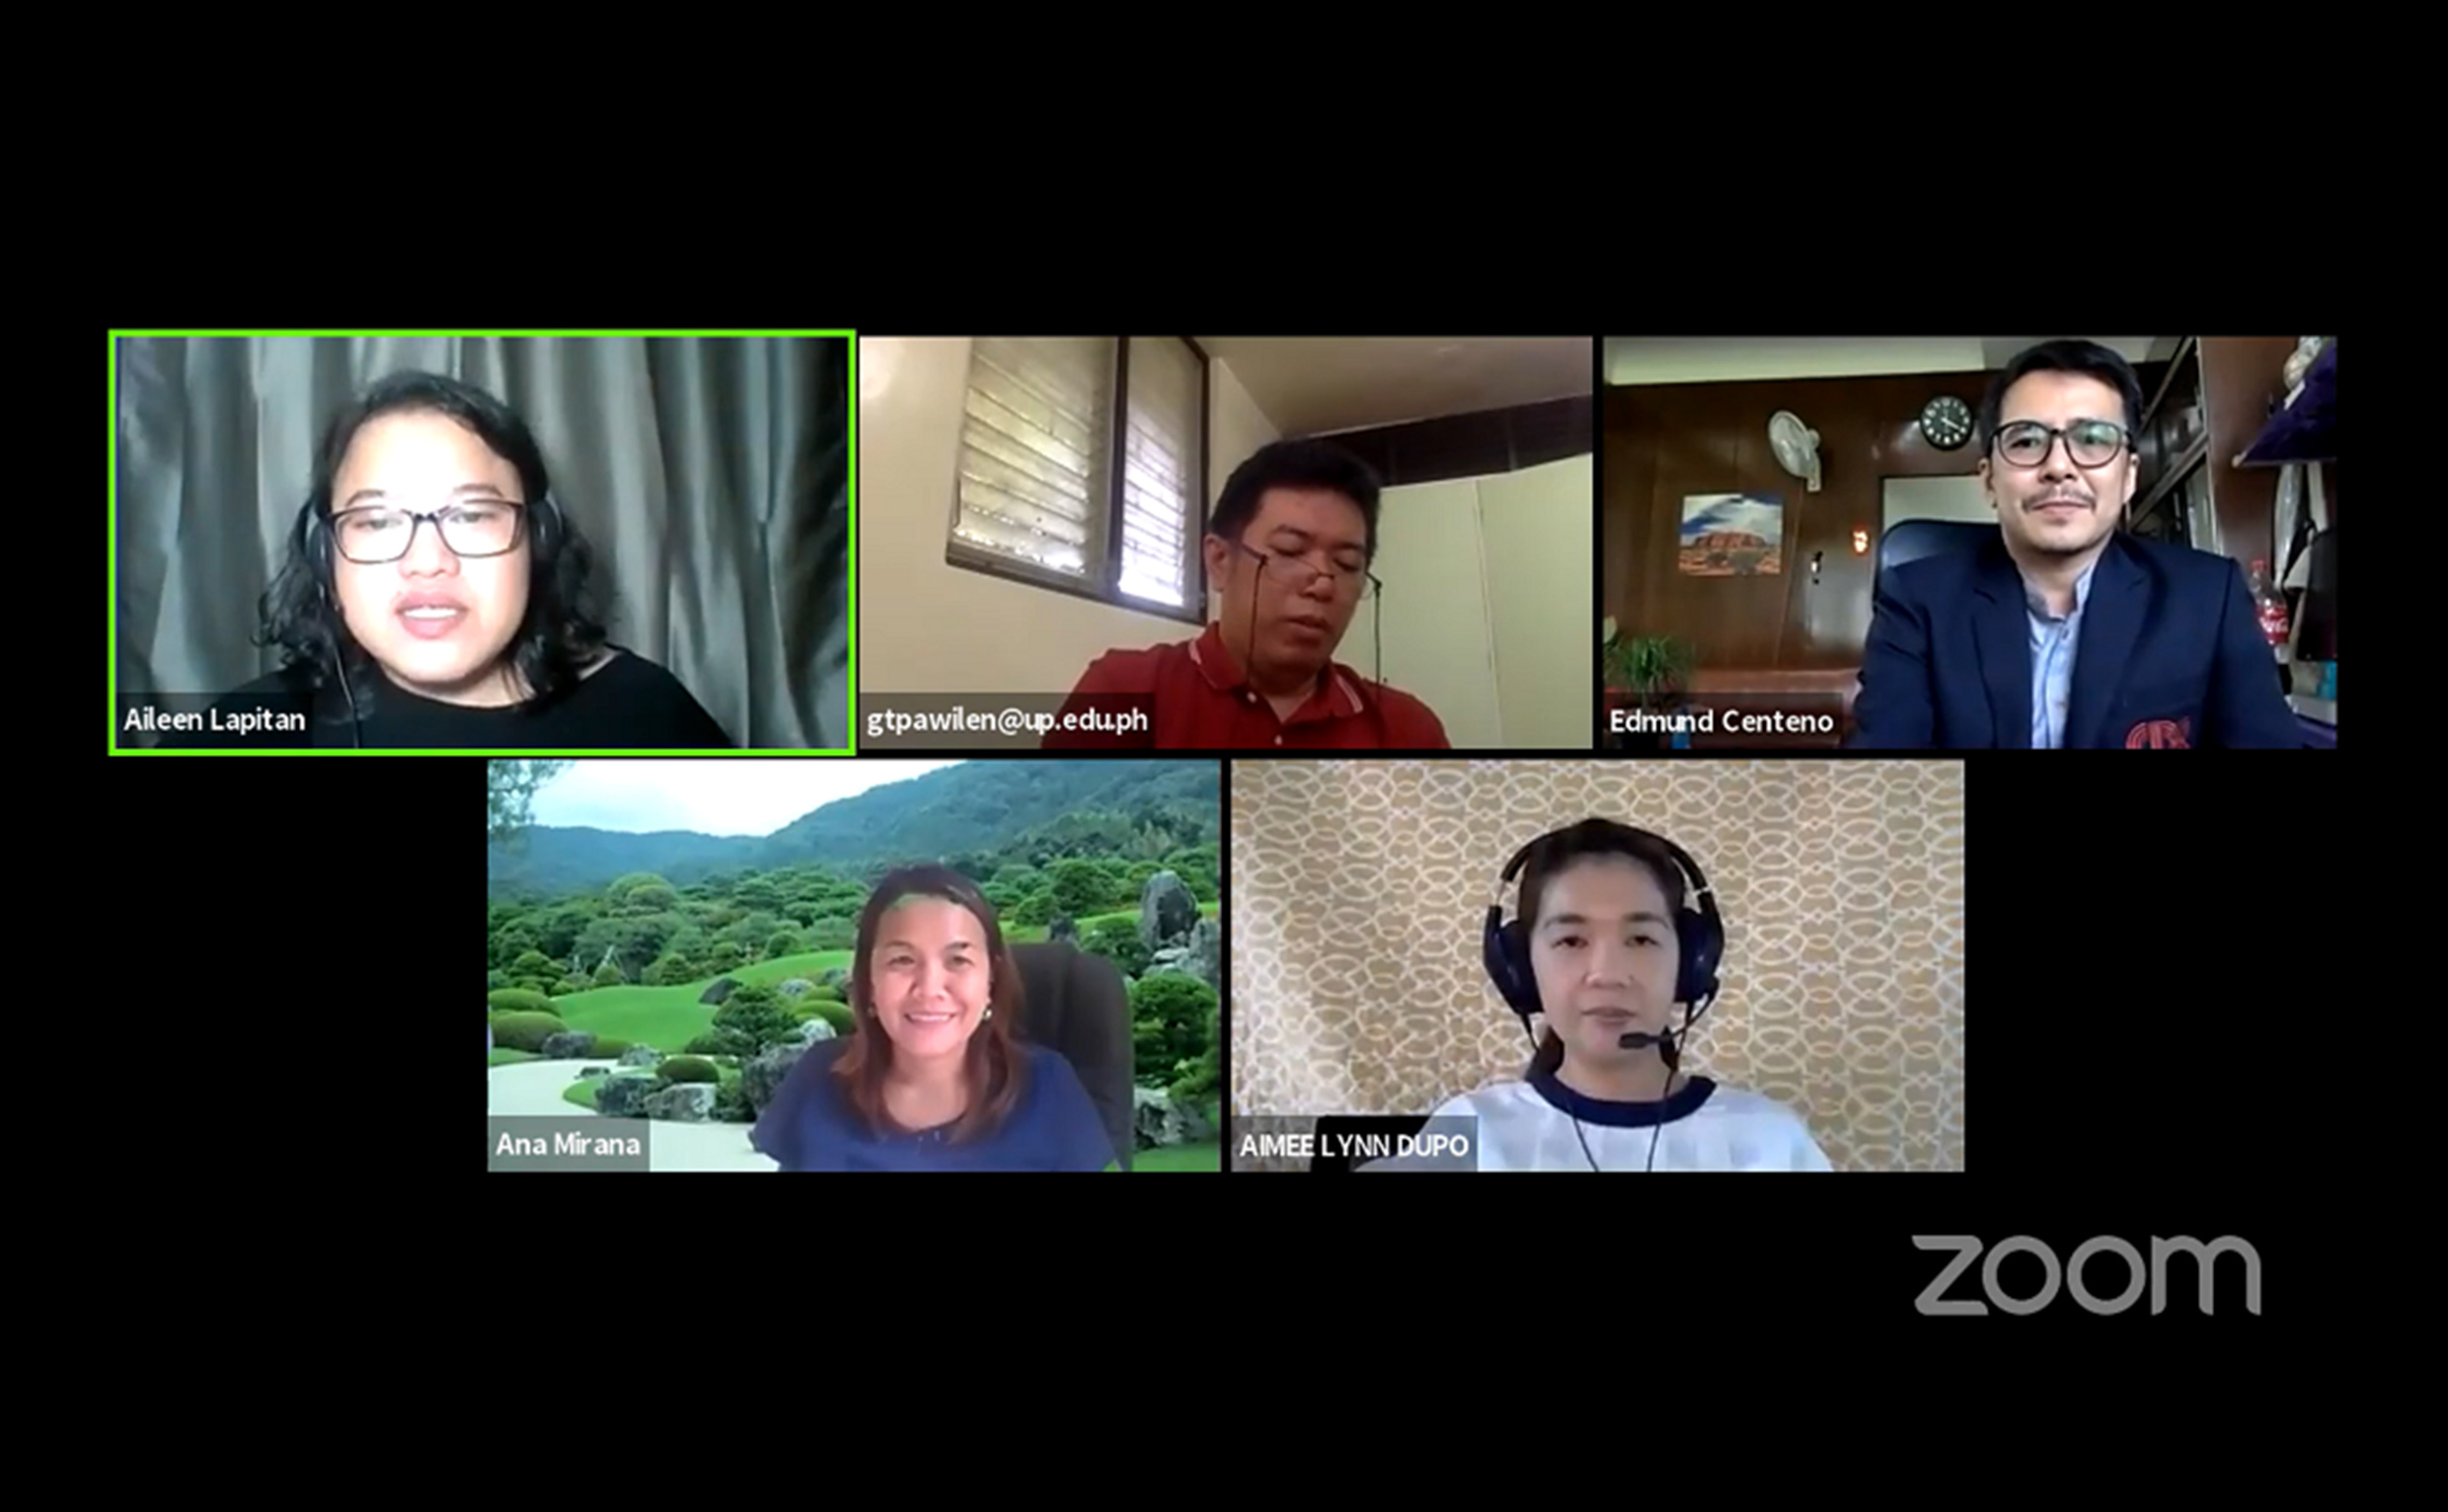 Educators talk about flexible learning amidst COVID-19